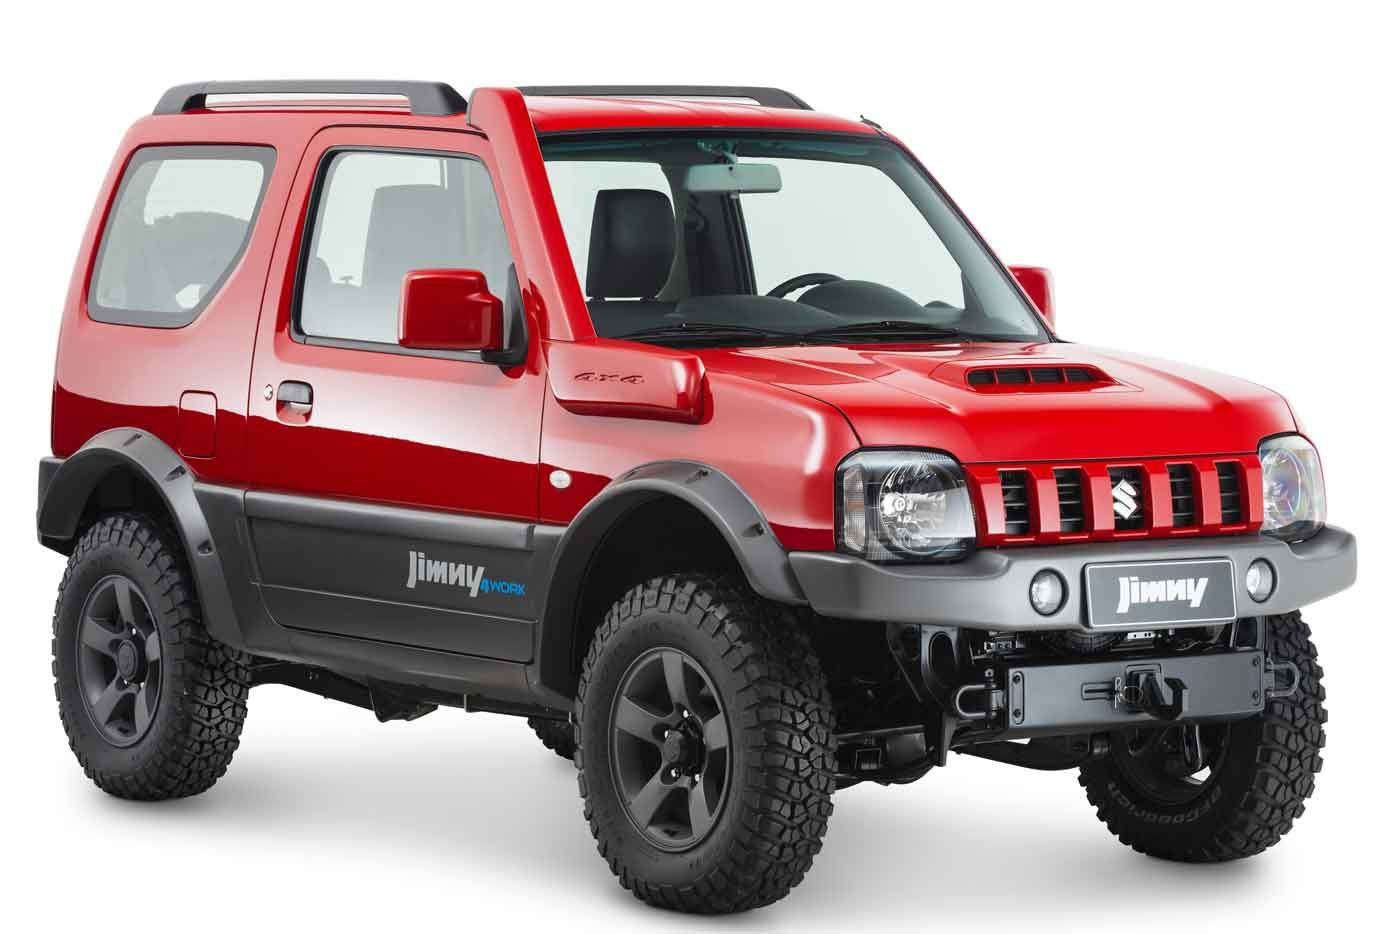 modern suzuki jimny this was known in the past as the suzuki samurai keicars suzuki. Black Bedroom Furniture Sets. Home Design Ideas